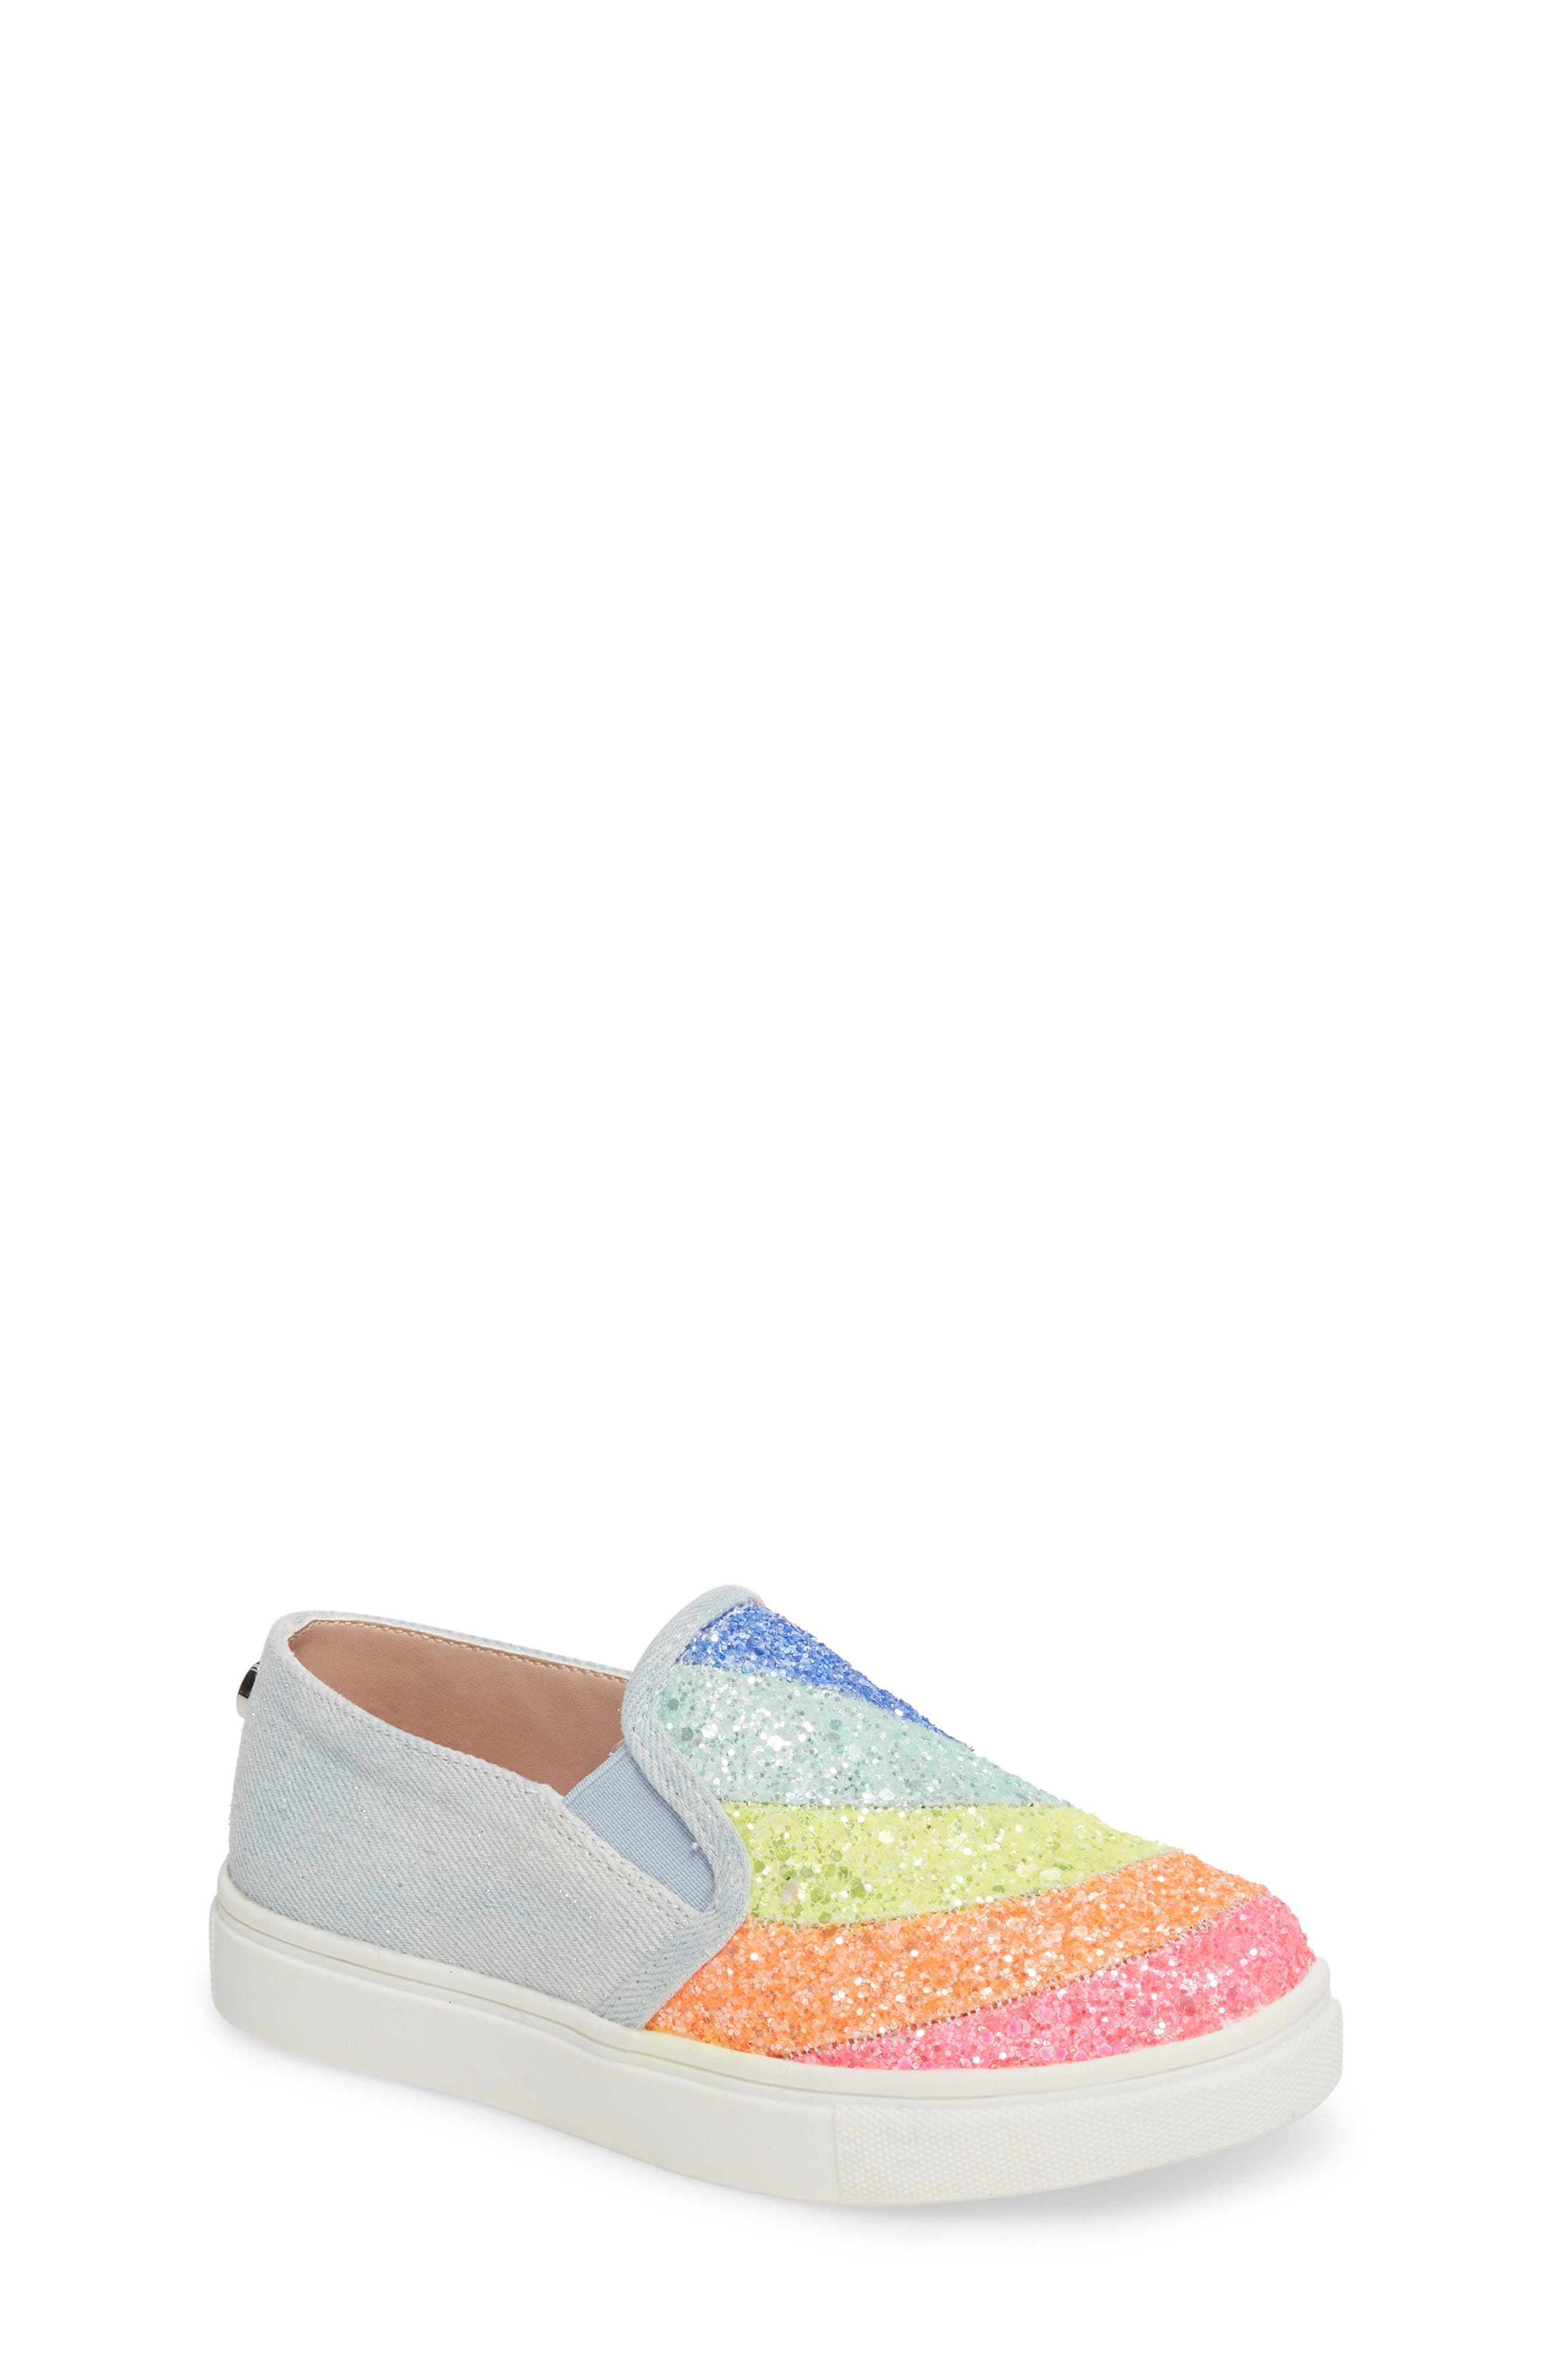 JWISH Rainbow Slip-On Sneaker,                         Main,                         color, 650